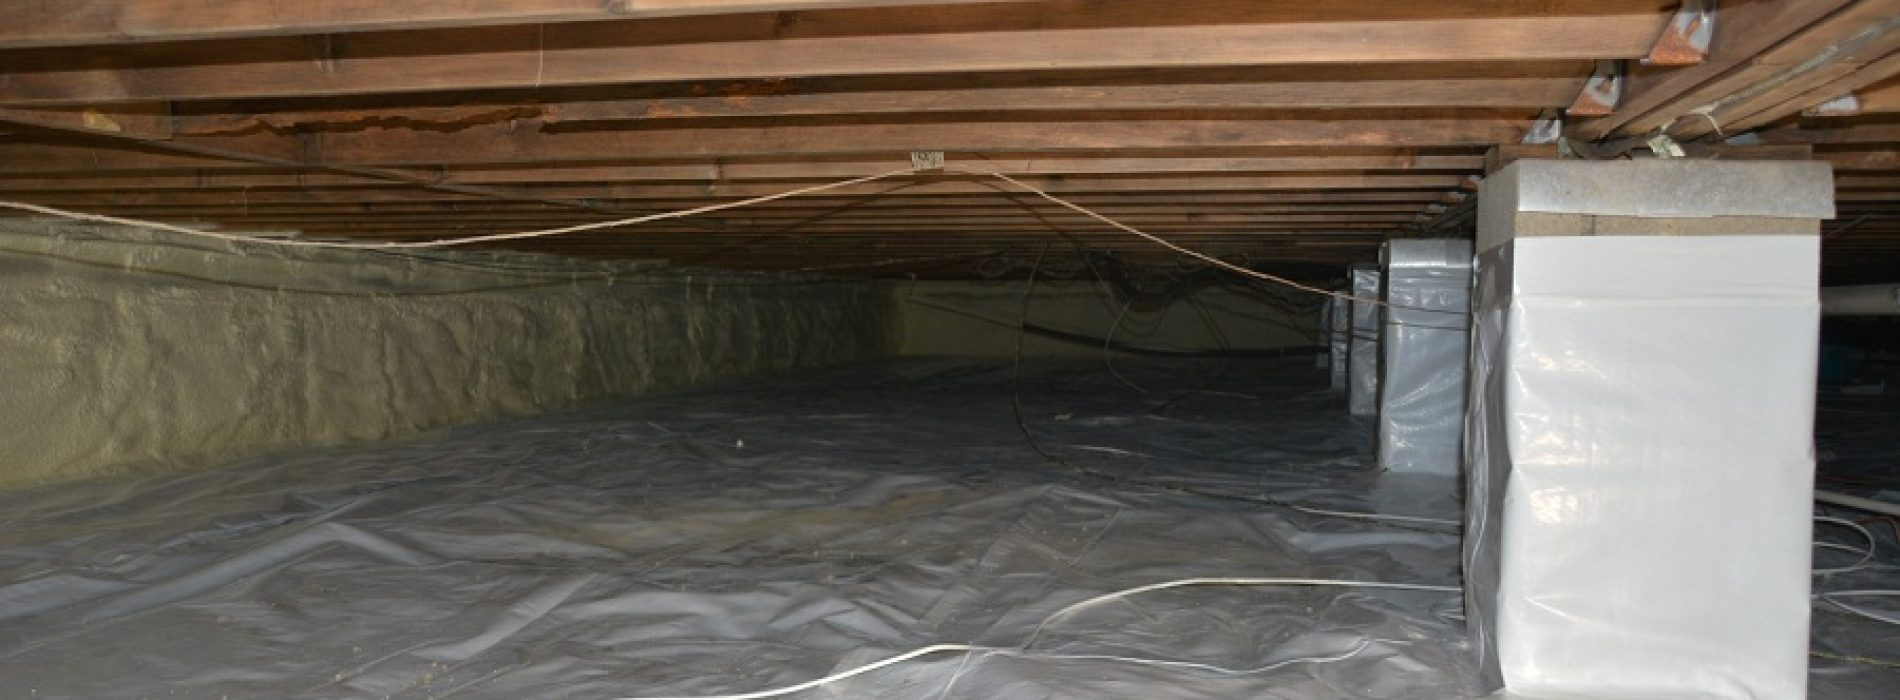 Quality Crawlspace Repair – Experts To Check Foundation First